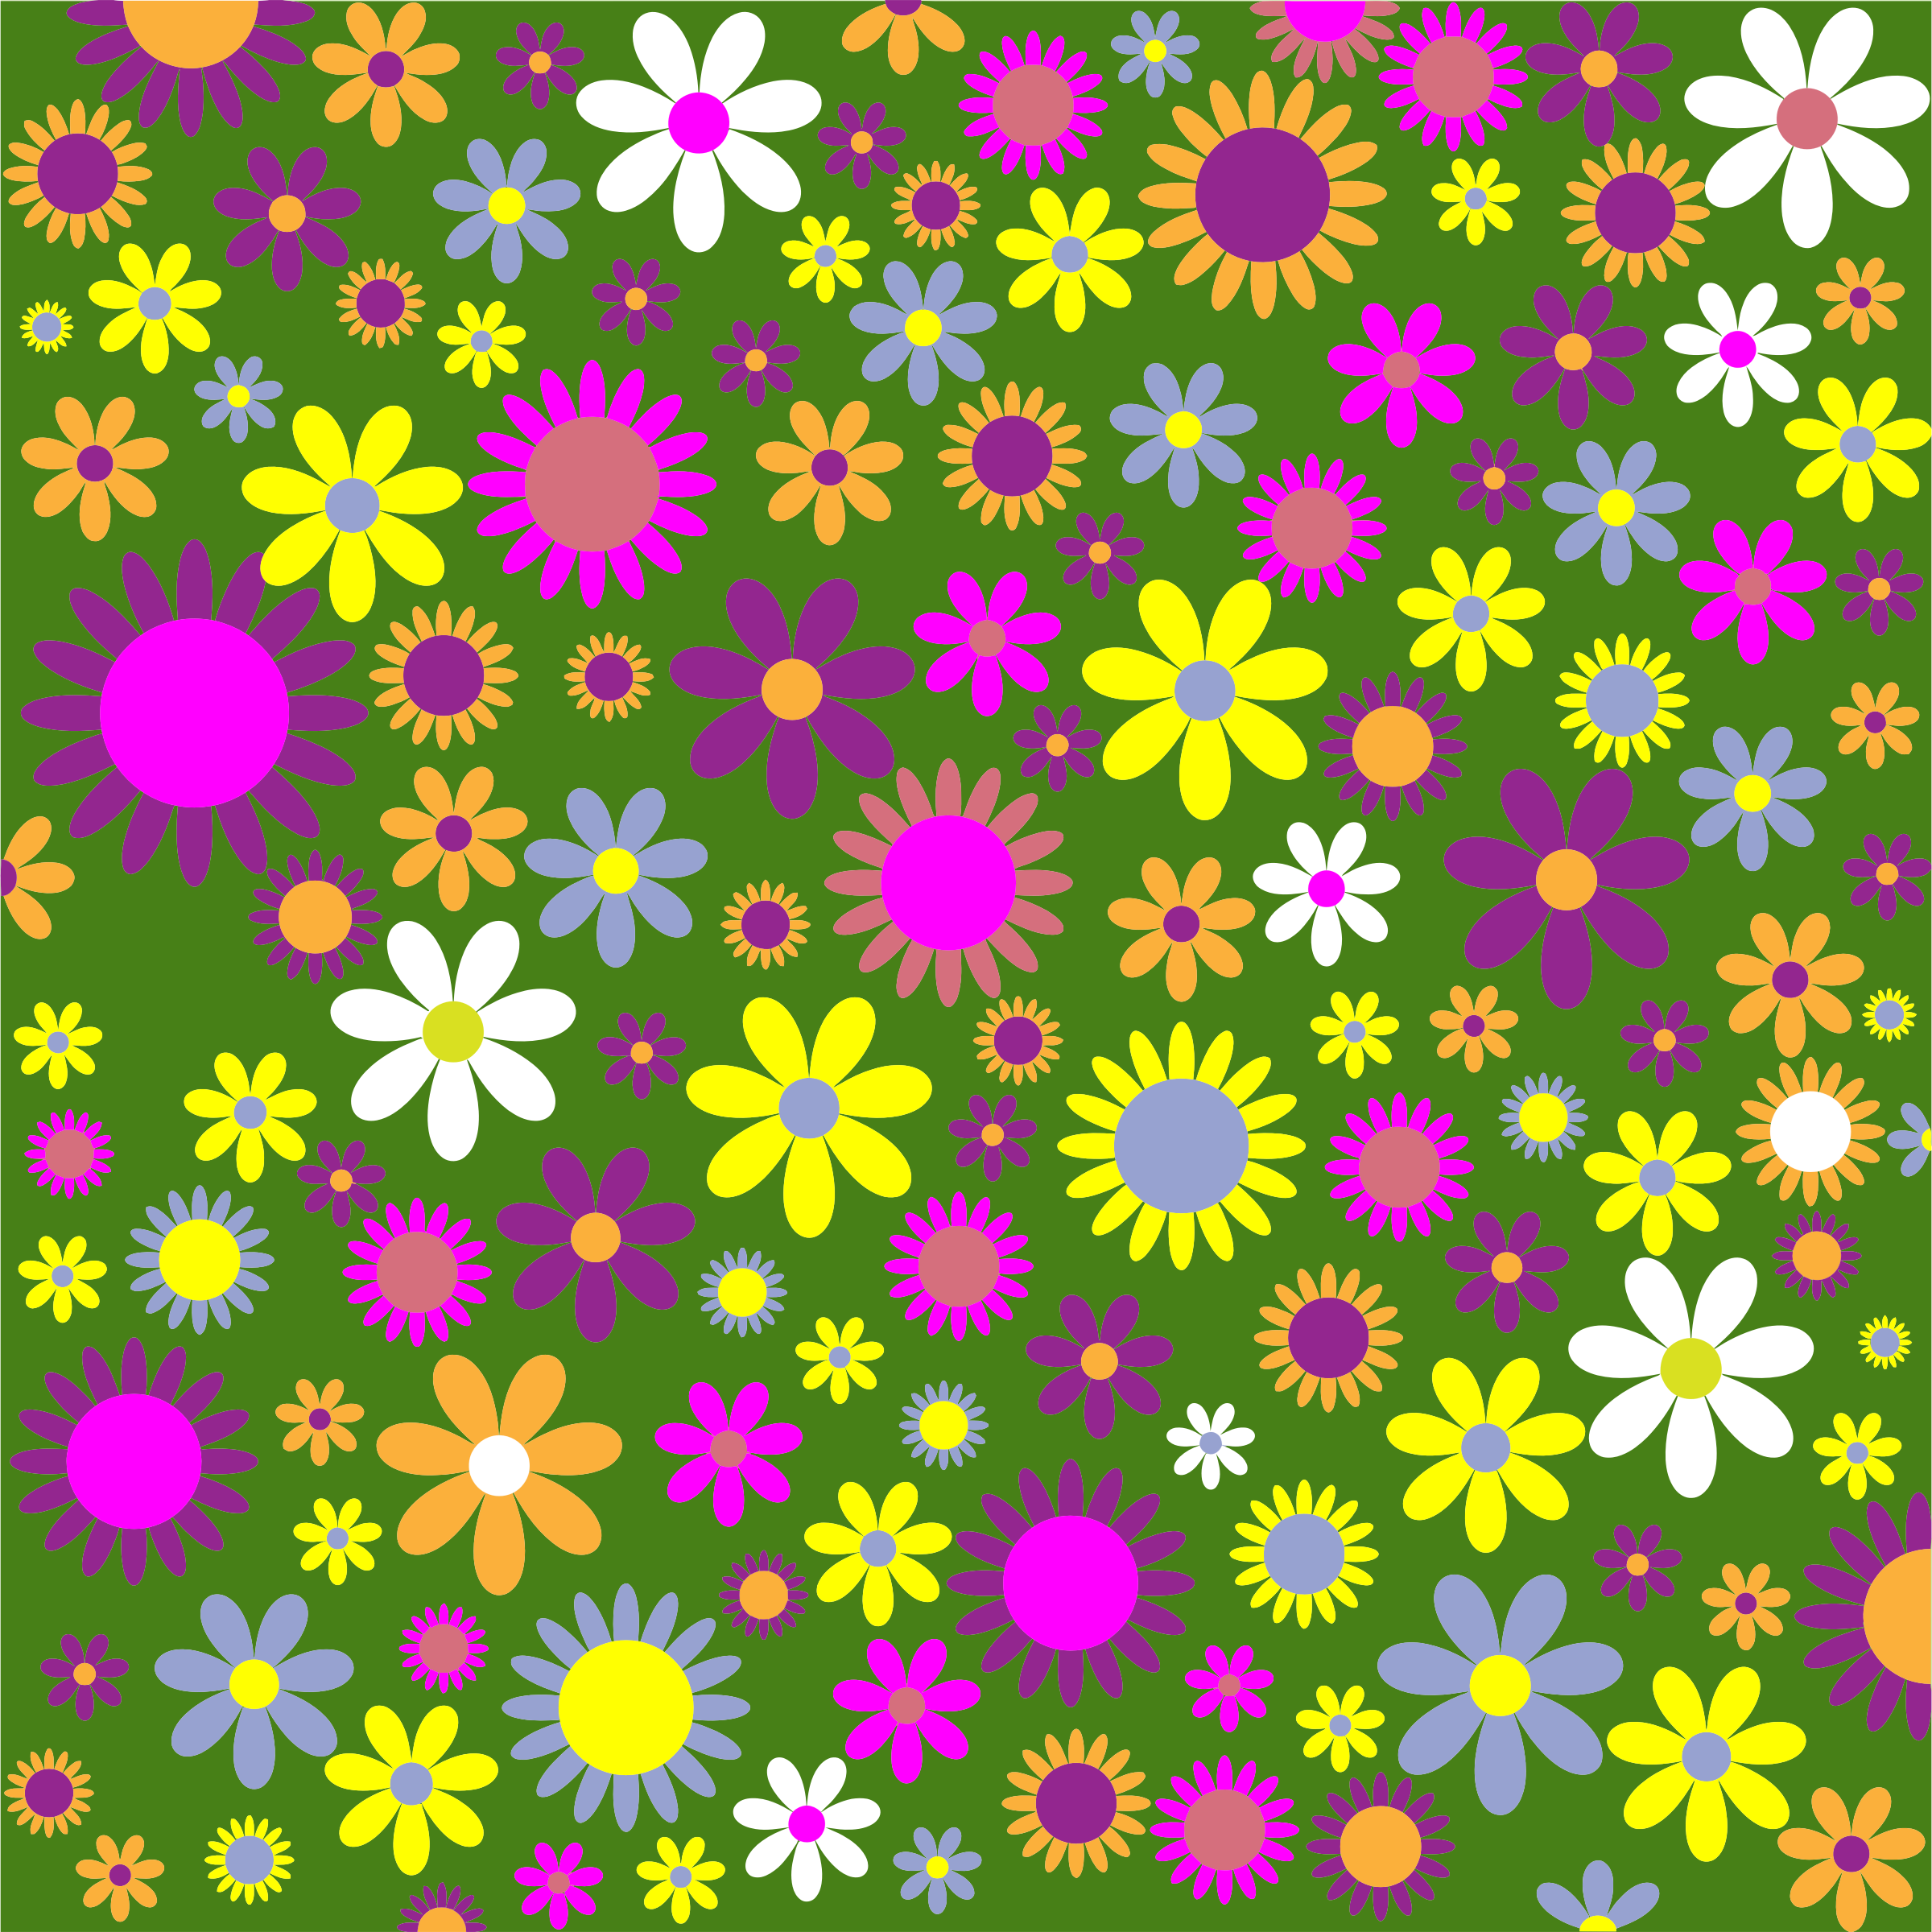 Retro Floral Background Pattern by GDJ